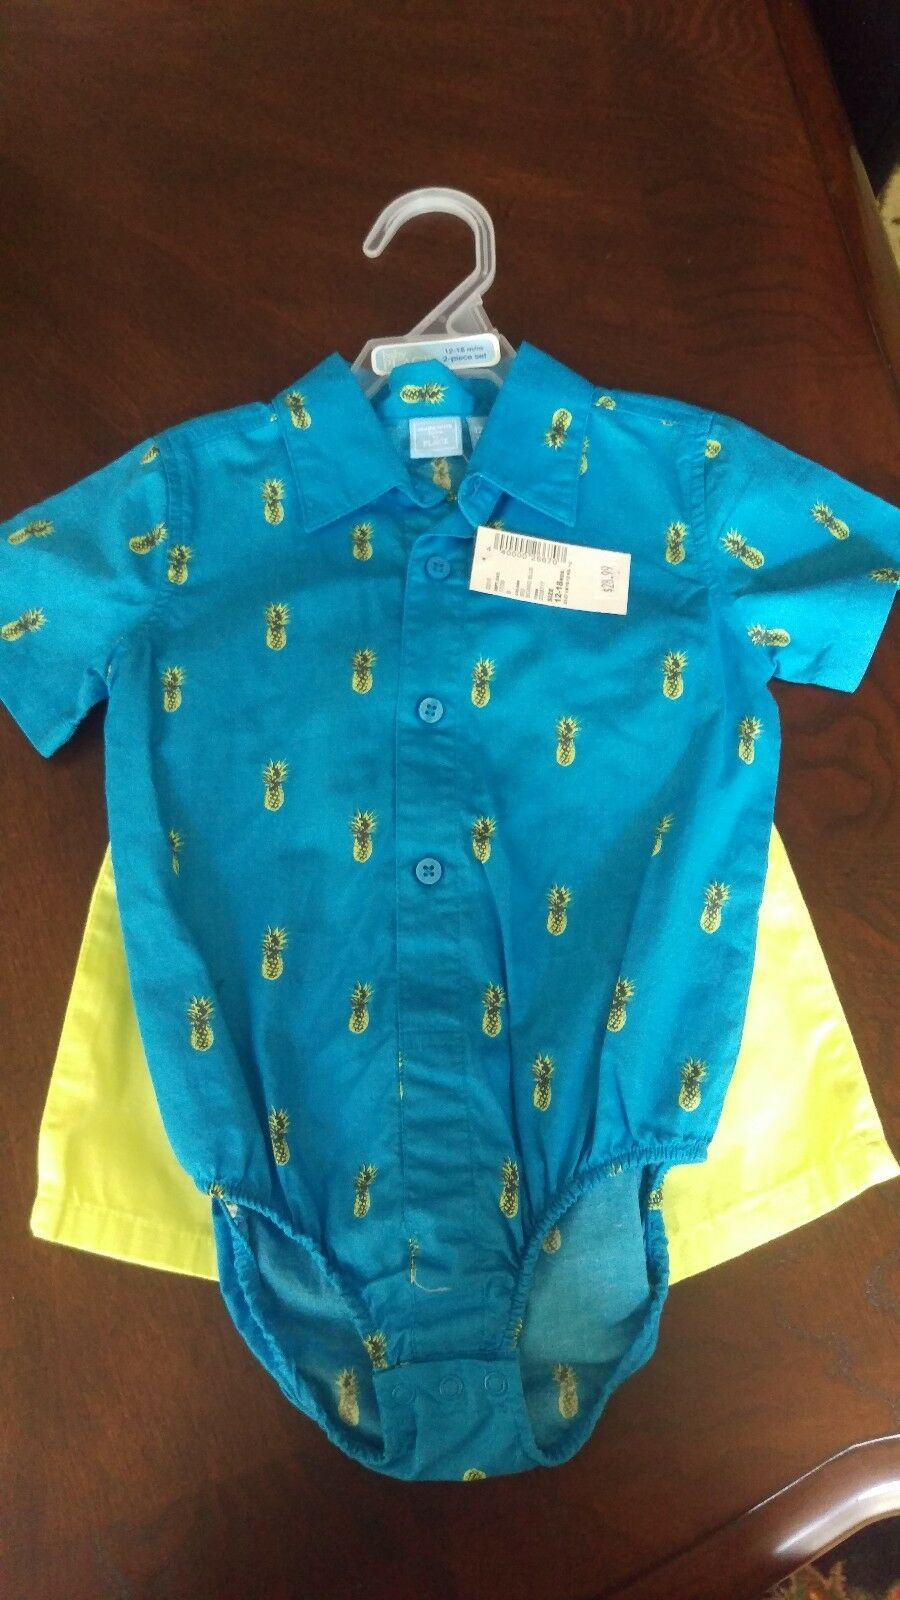 Brand new The Children's Place  baby boy  clothing 12-18 mon